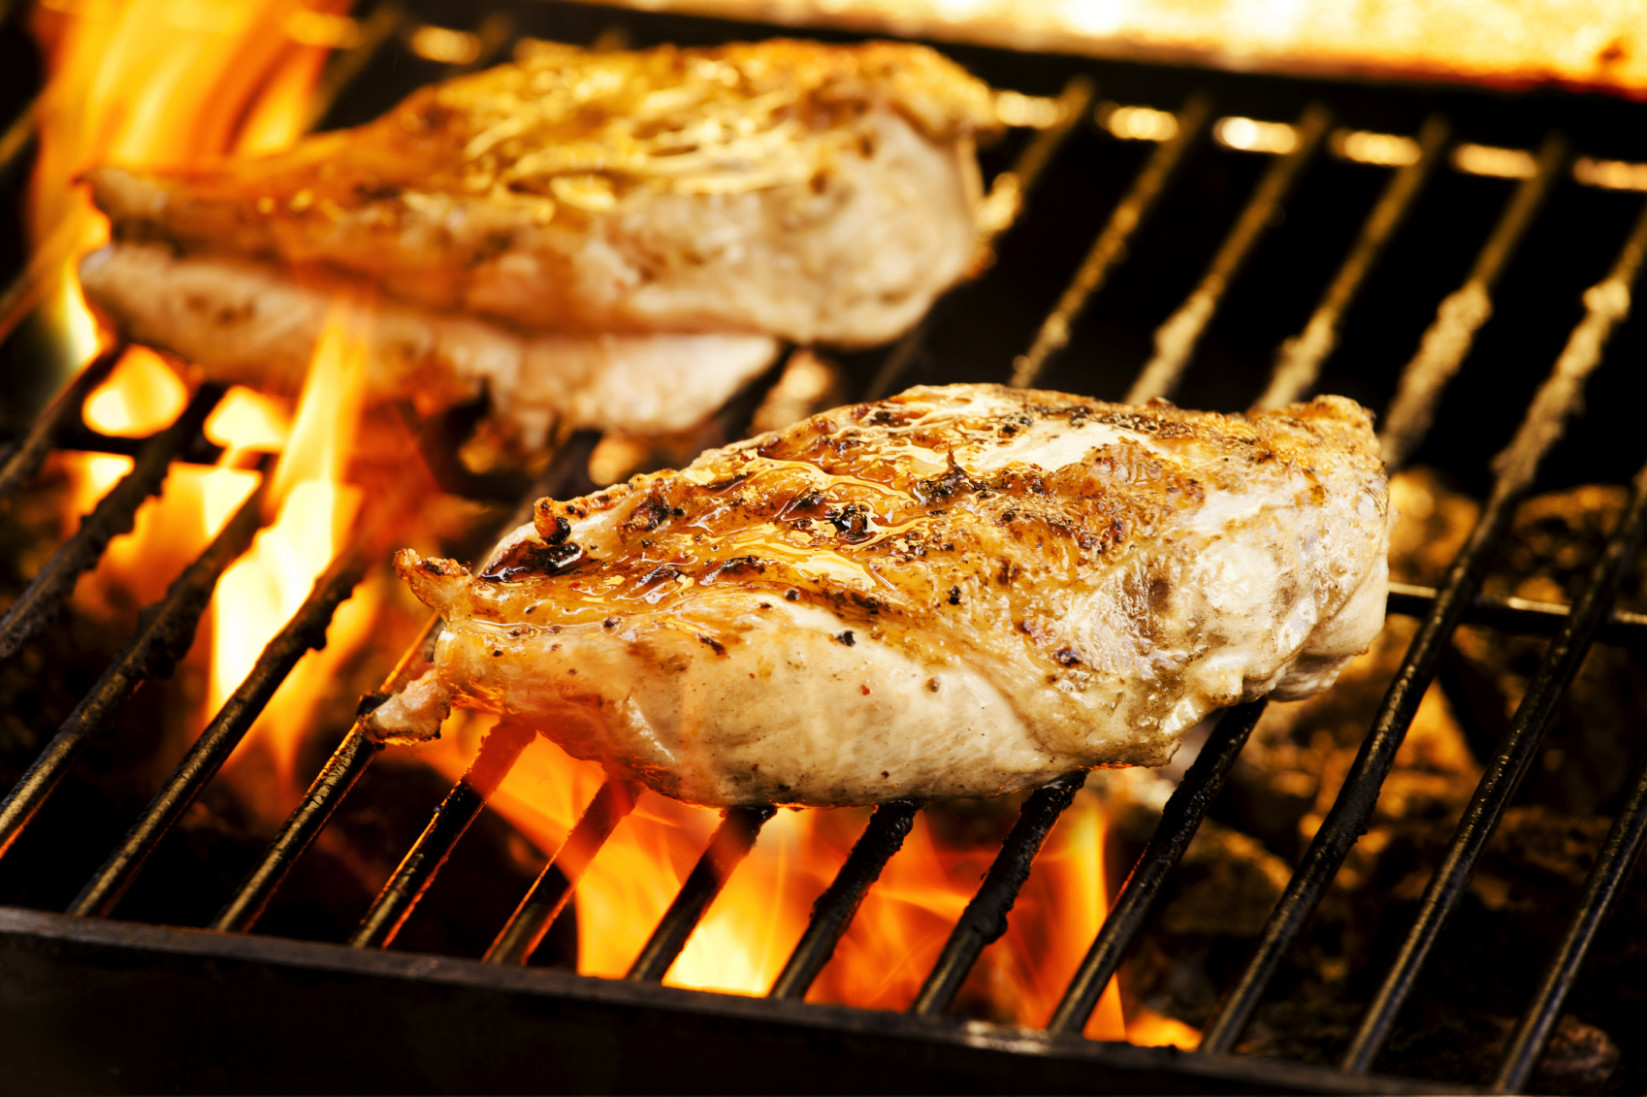 Buttery Garlic Grilled Chicken Breast Recipe - chicken recipes on the grill